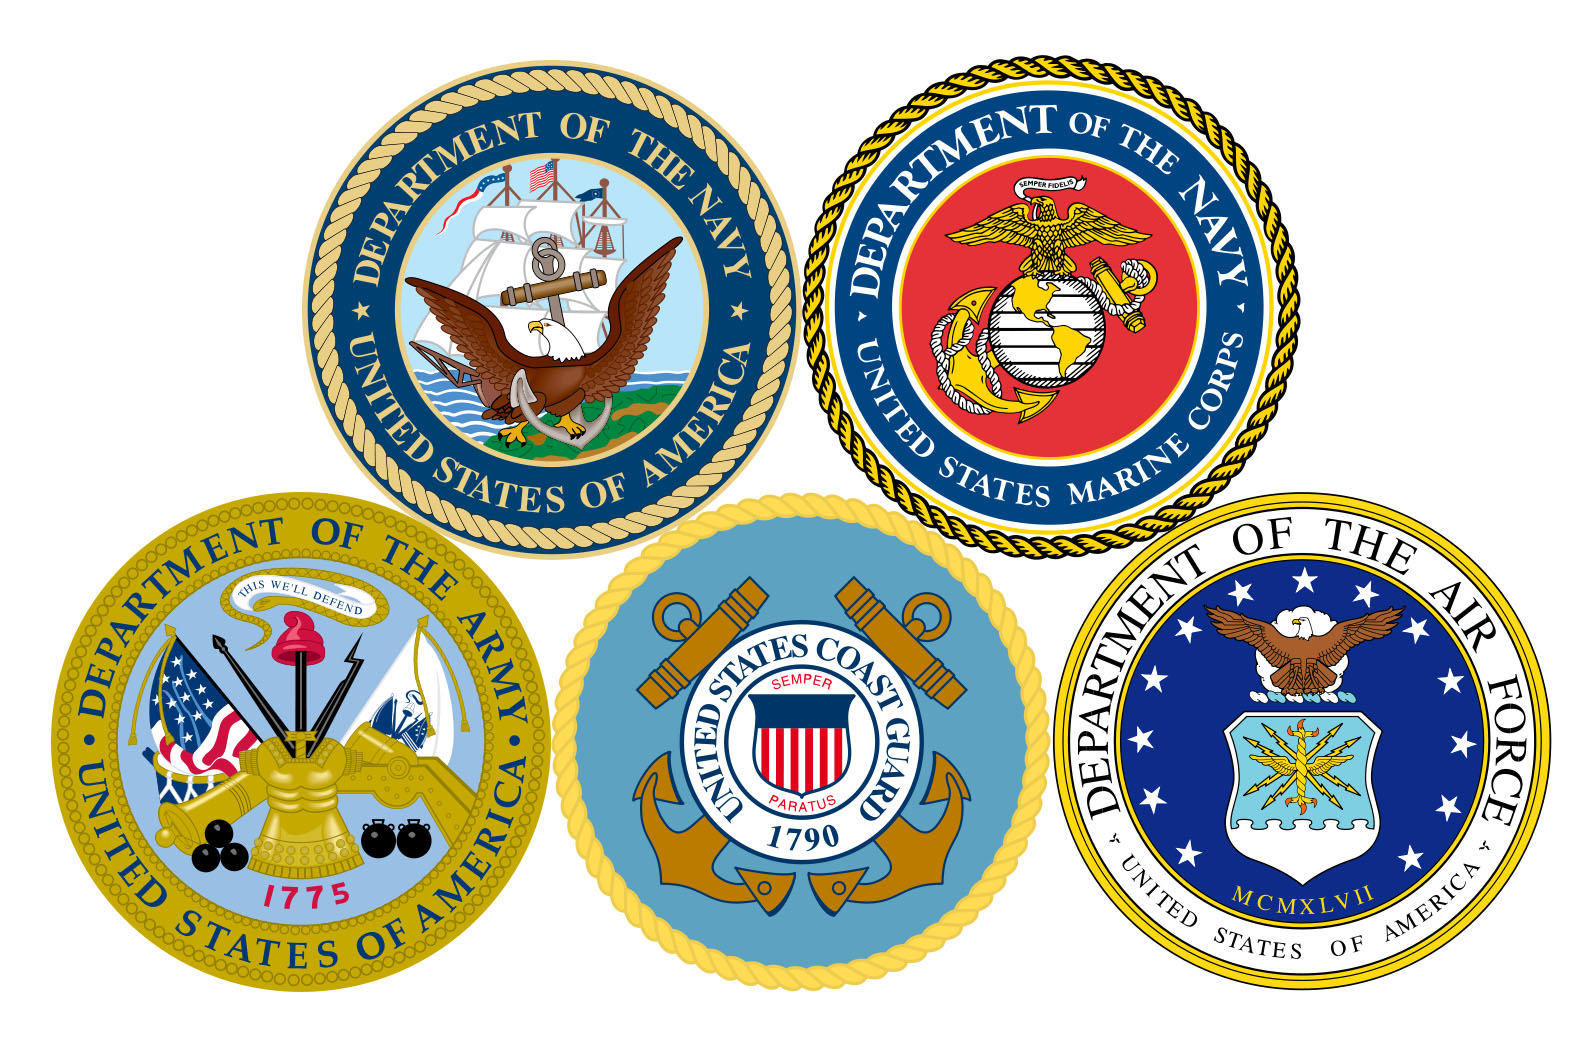 Branches of US Military in Hawaii